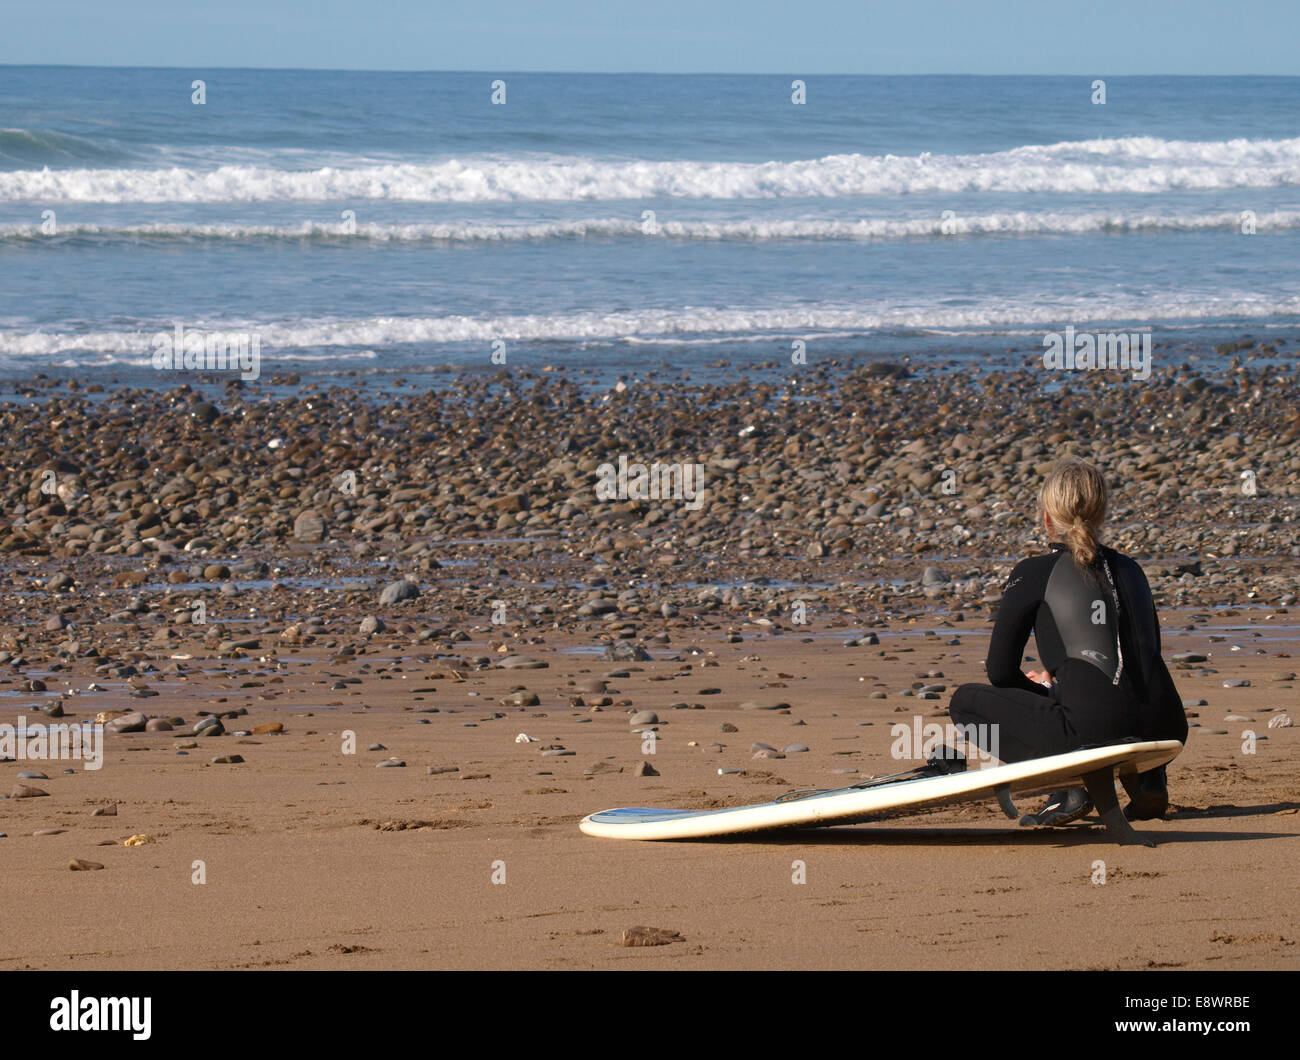 Surfer crouched on the beach watching the waves, Widemouth Bay, Bude, Cornwall, UK Stock Photo